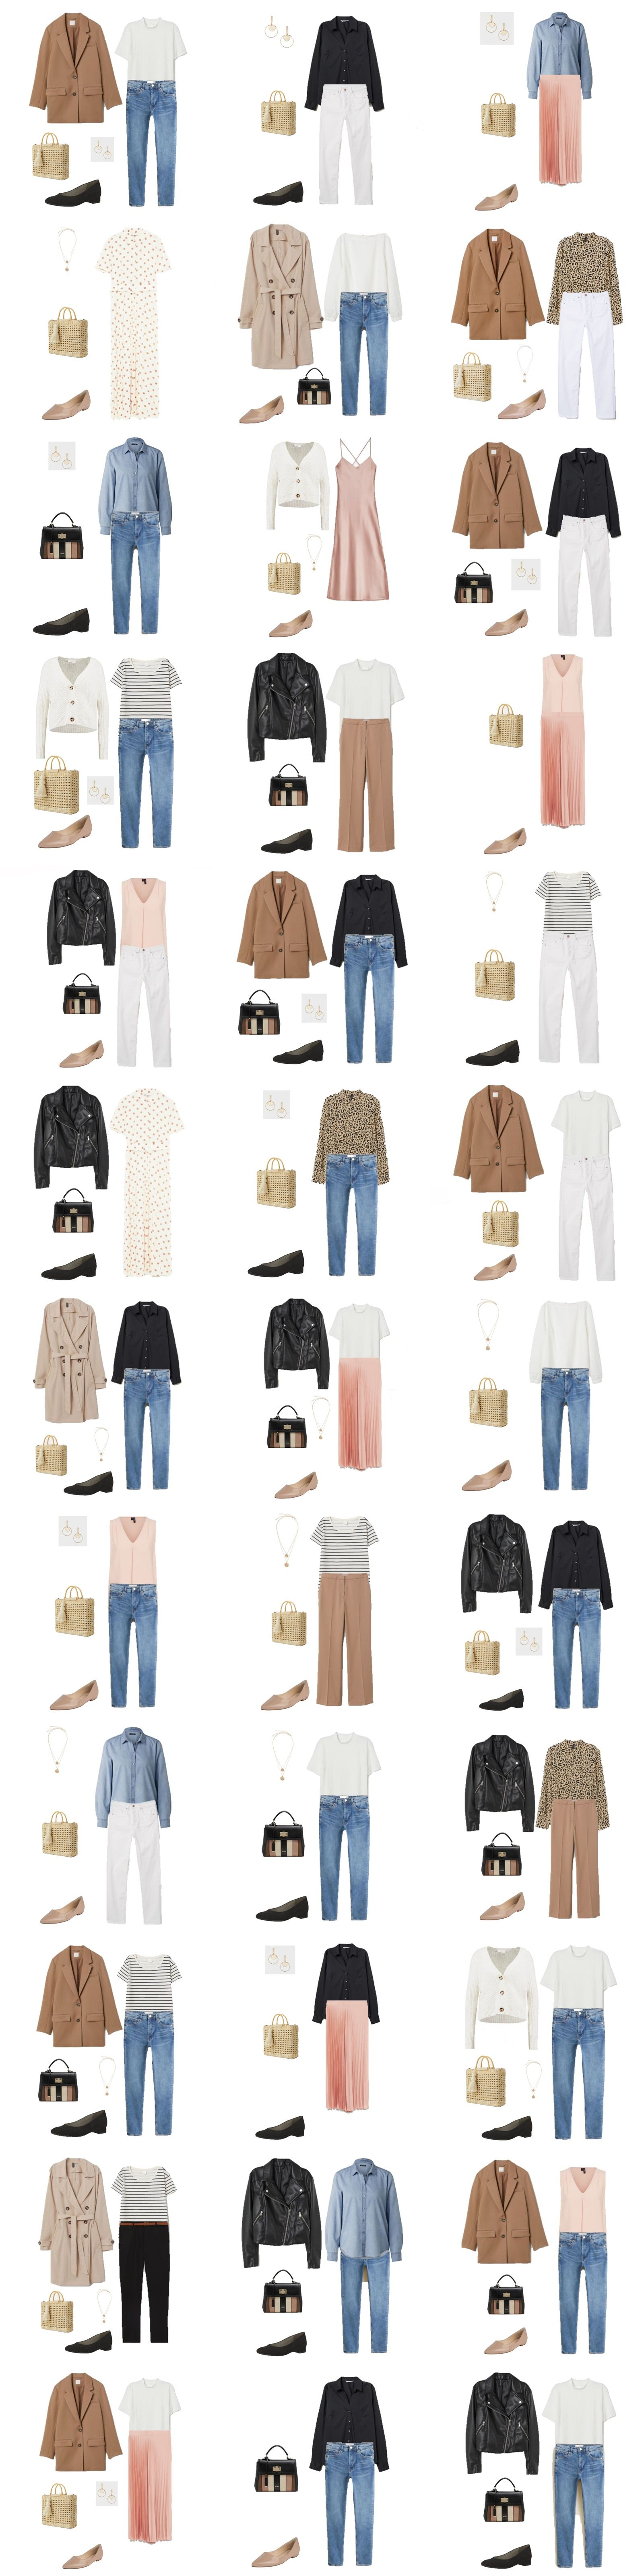 Spring Capsule Wardrobe 2019 – Frauentrend. Wochentag / Casual Date Outfit Optionen …